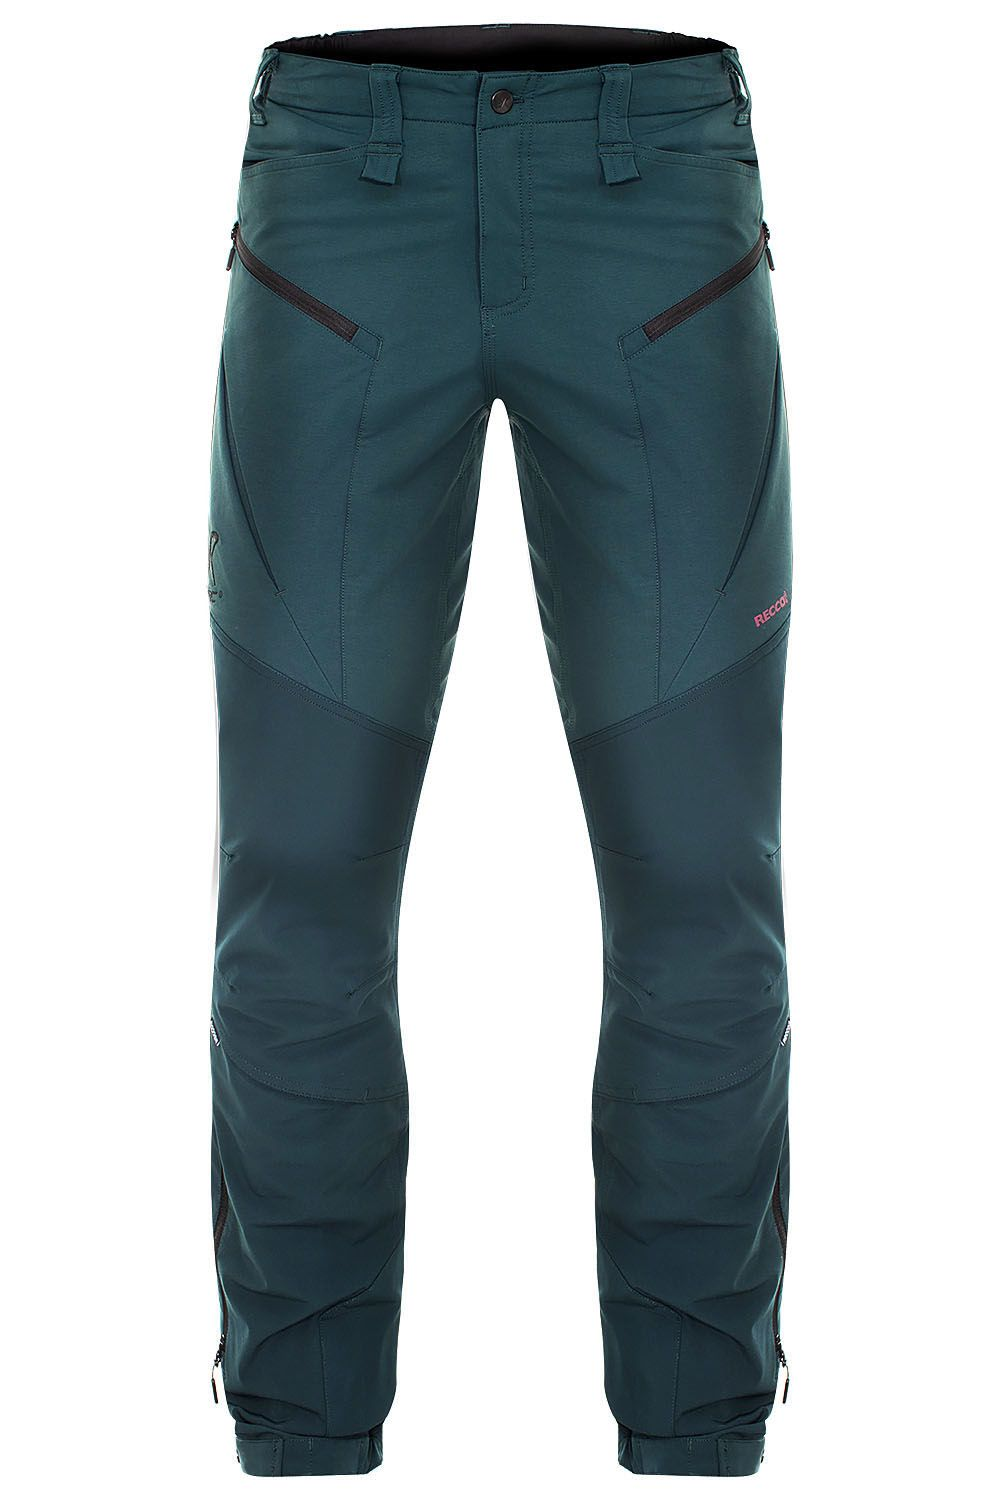 Comp 2 Pro Rescue Pants Men S Deep Teal New Ultra Durable Hiking And Mountaineering Pants In 2020 Hiking Fashion Outdoor Outfit Pants